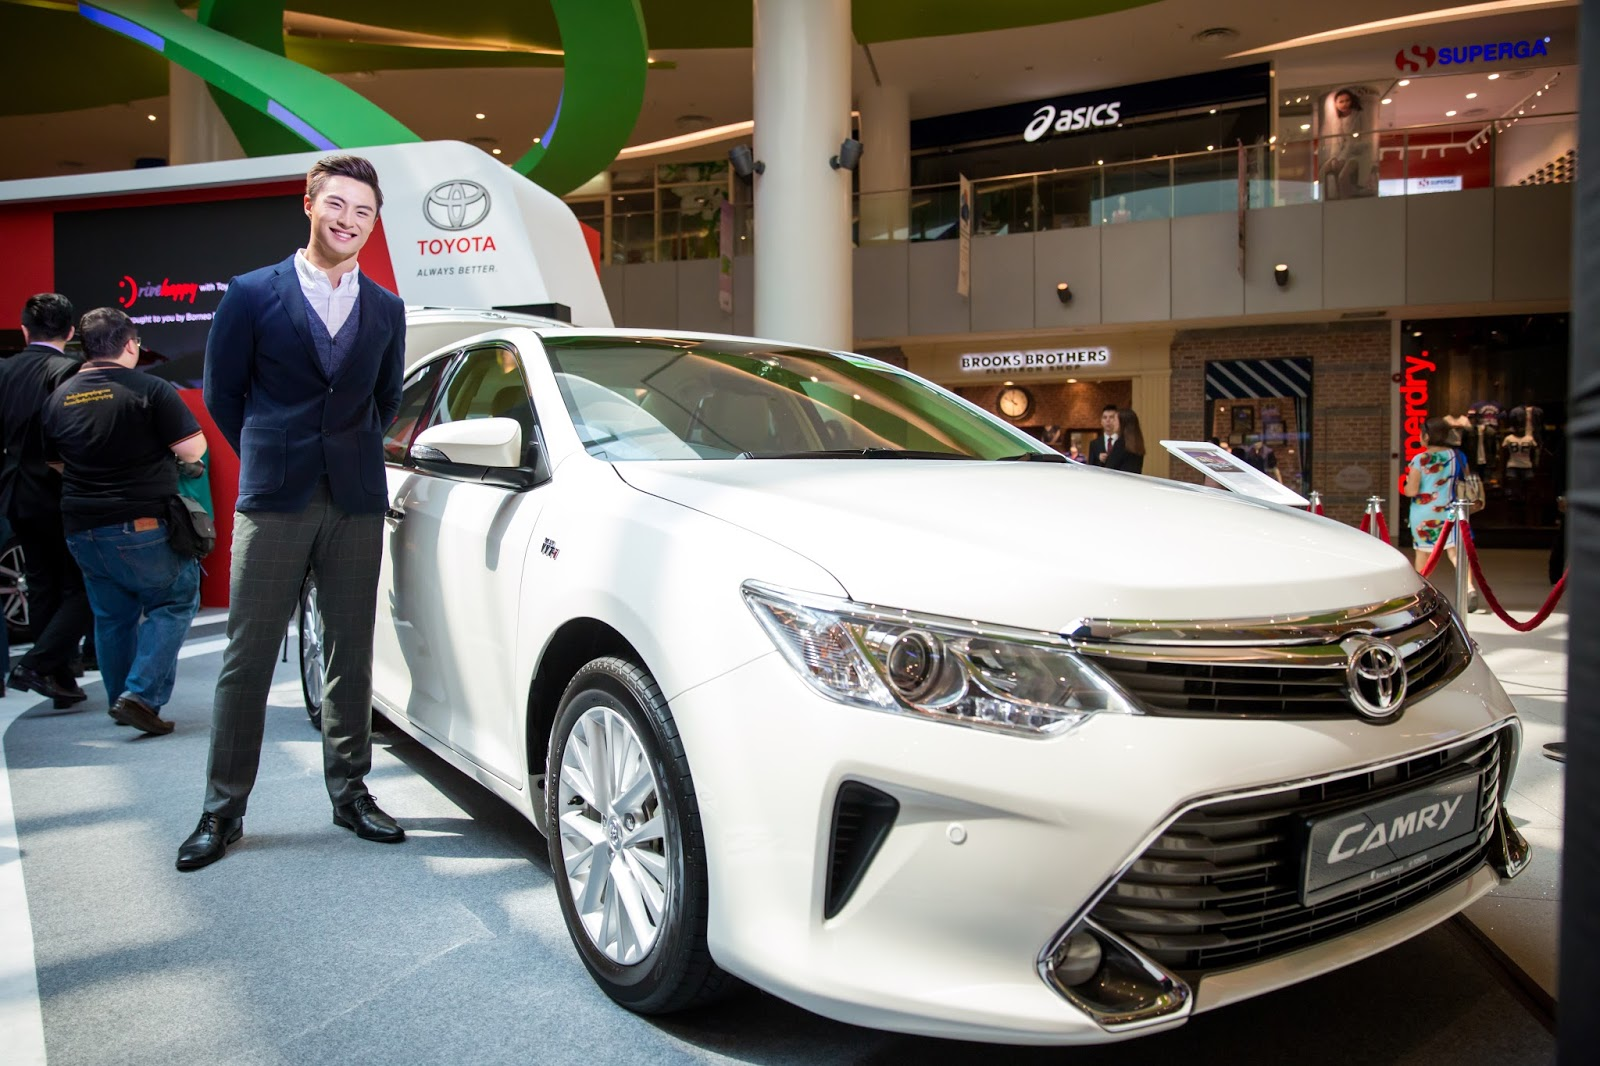 All New Camry Singapore Harga Grand Veloz 1.5 A/t Shaun Owyeong Toyota 39s Fortuner Debuts At Drivehappy With